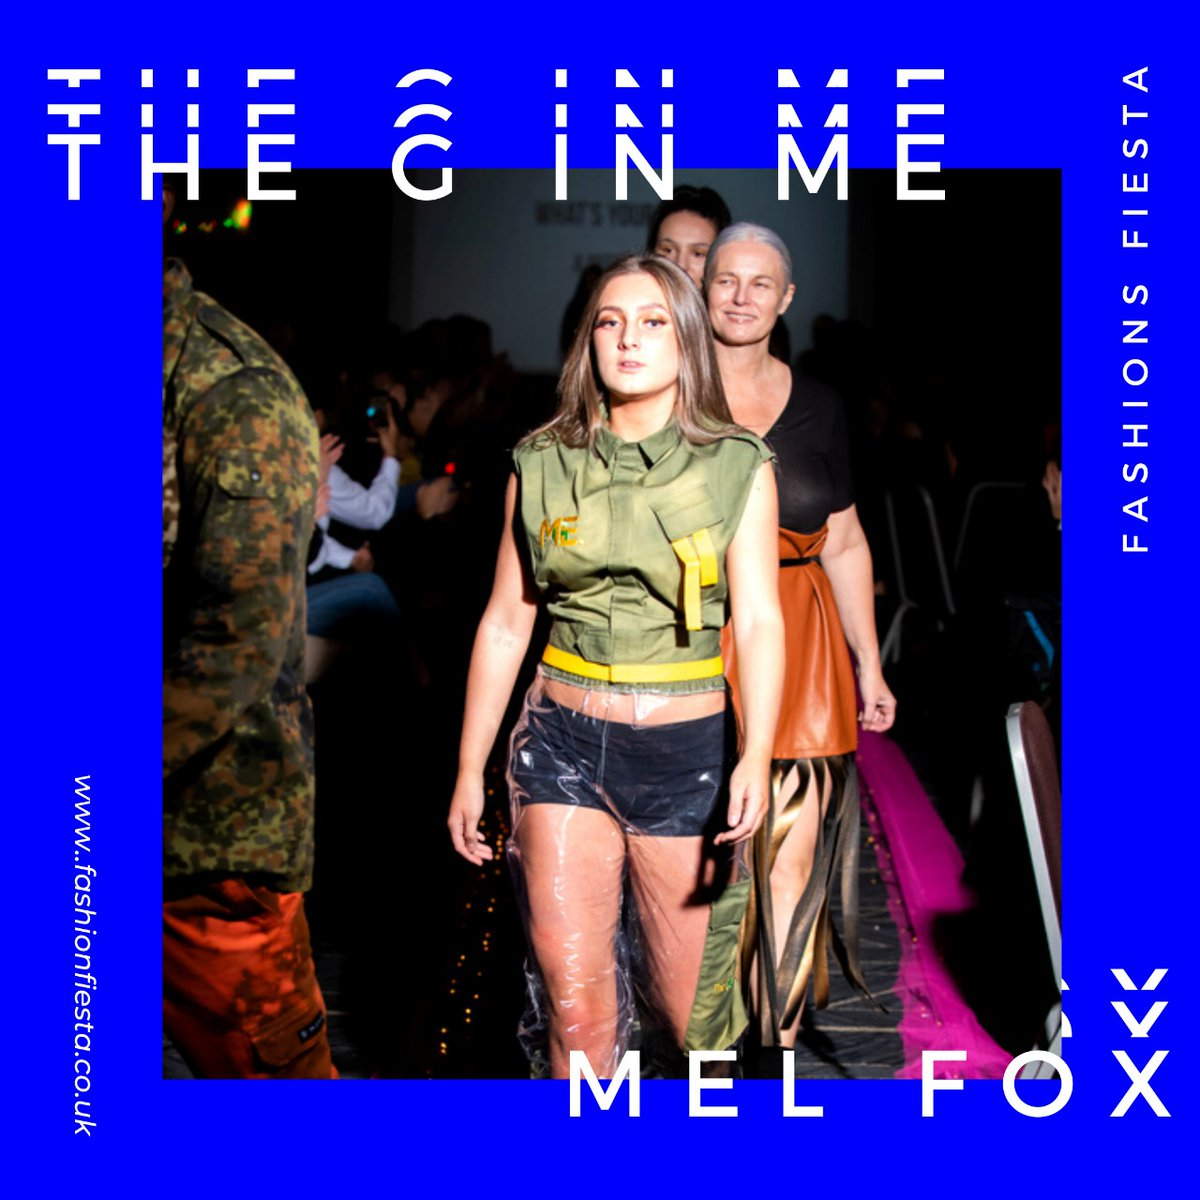 We're missing @fashionfiesta_ this year here is a #Throwback to 2019.  Meet THE G IN ME by 2019 designer MEL FOX⠀ ⠀ Mel's brand THE G IN ME inspires YOU to be a HIGHER YOU.⠀ ⠀ What outfit makes YOU a BETTER you? Let us know below!⠀  #ThrowbackThursday #Charity #TBT https://t.co/uYmqEhWXjt